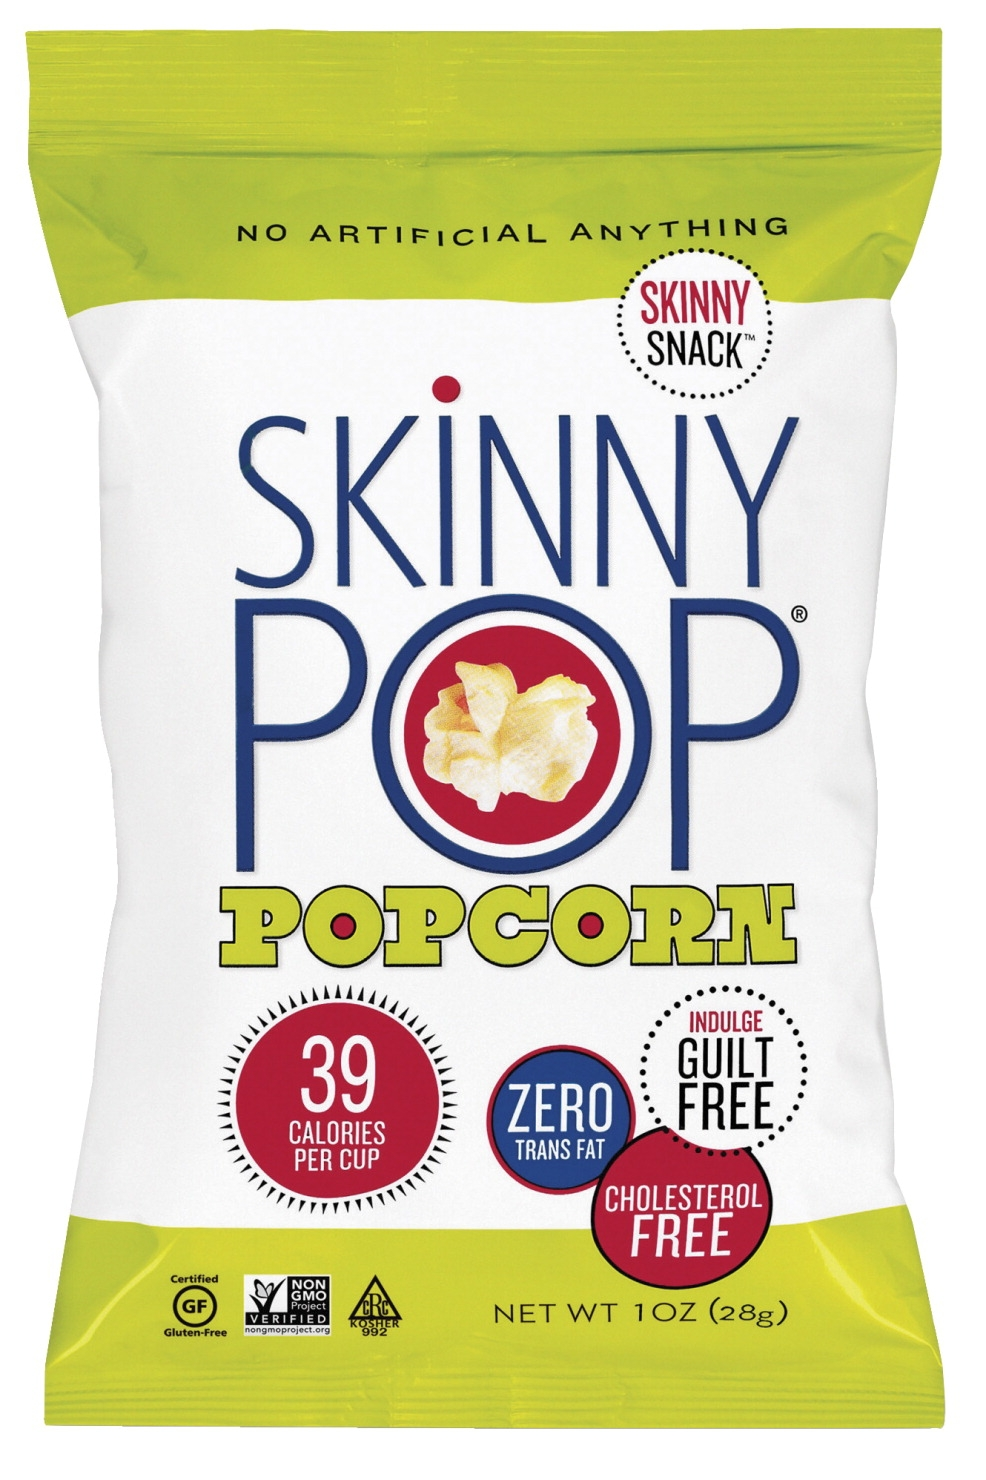 Skinny Popcorn Skinny Pop Popcorn; 1 Oz; Multi; Pack Of 12 - 1561929 - Facilities Management Facility Supplies Foodservice 1561929